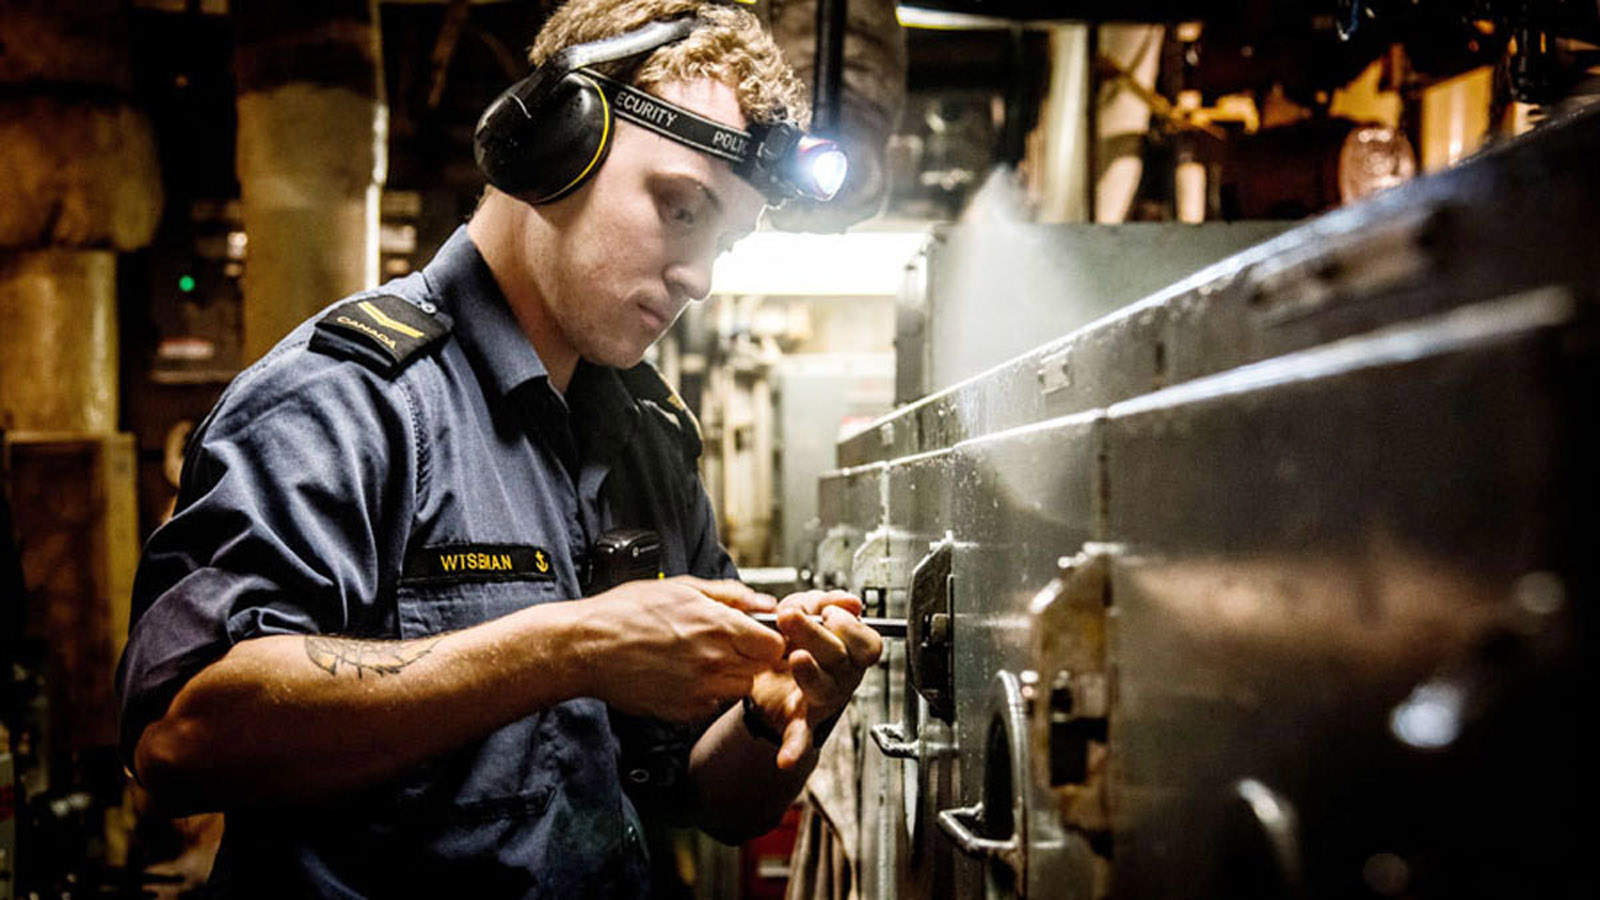 Leading Seaman Jacob Wiseman of HMCS Montréal opens an engine containment to check the oil level.